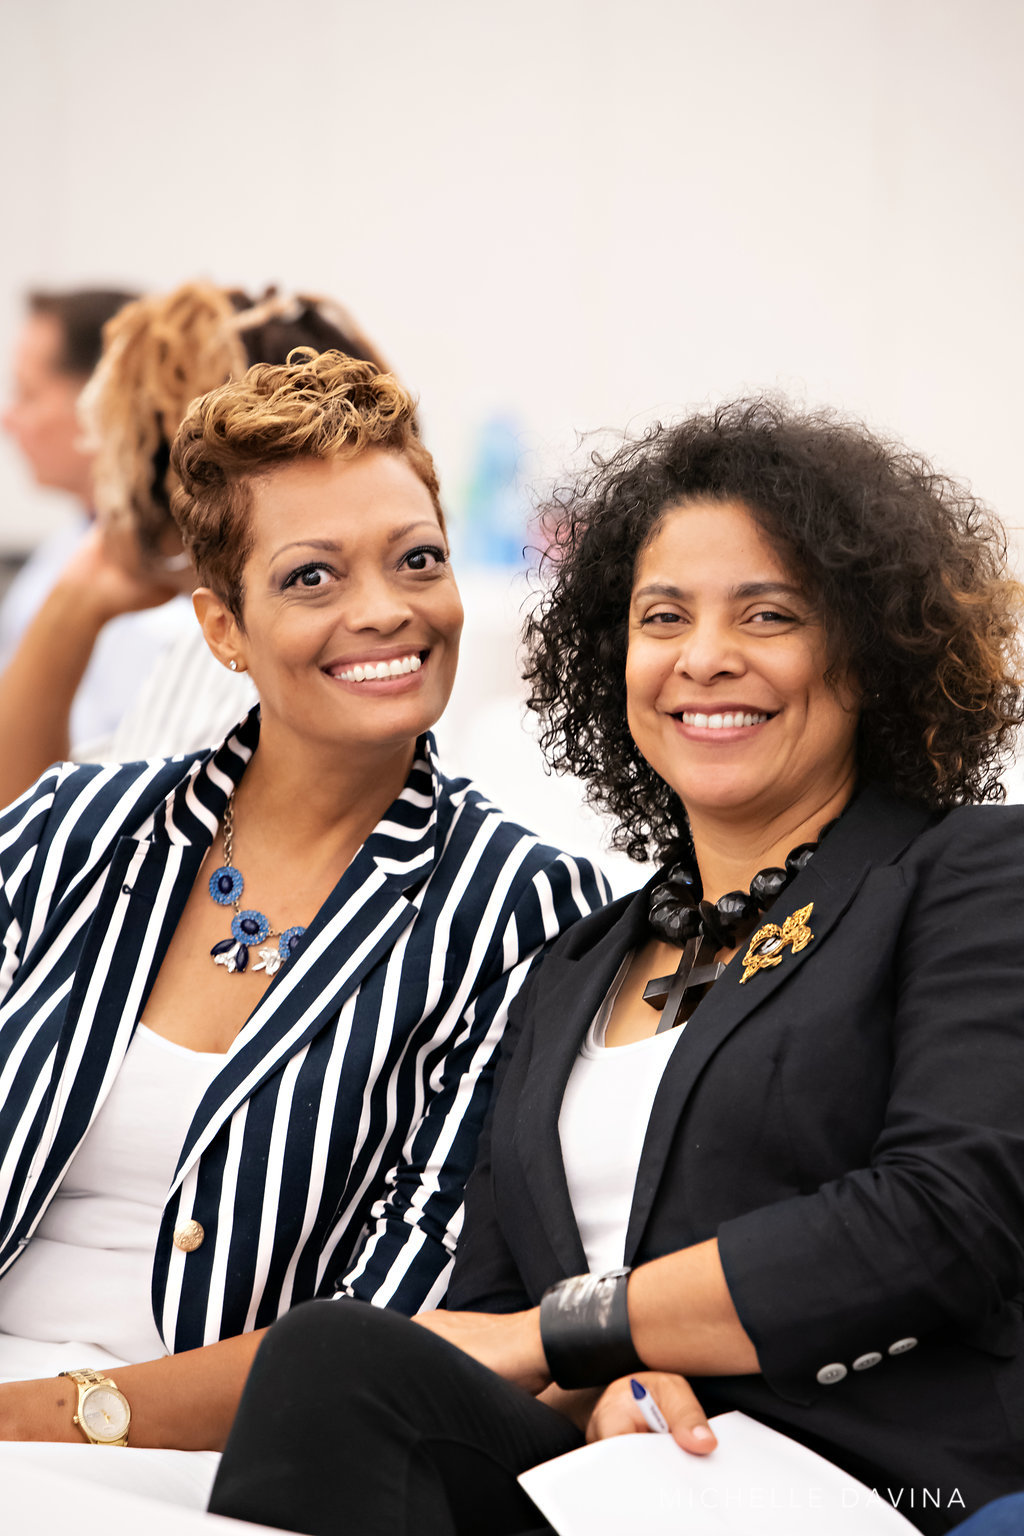 BSB_0148 Your Brand, Your Office & More: 5 Tips for Hosting a Networking Event